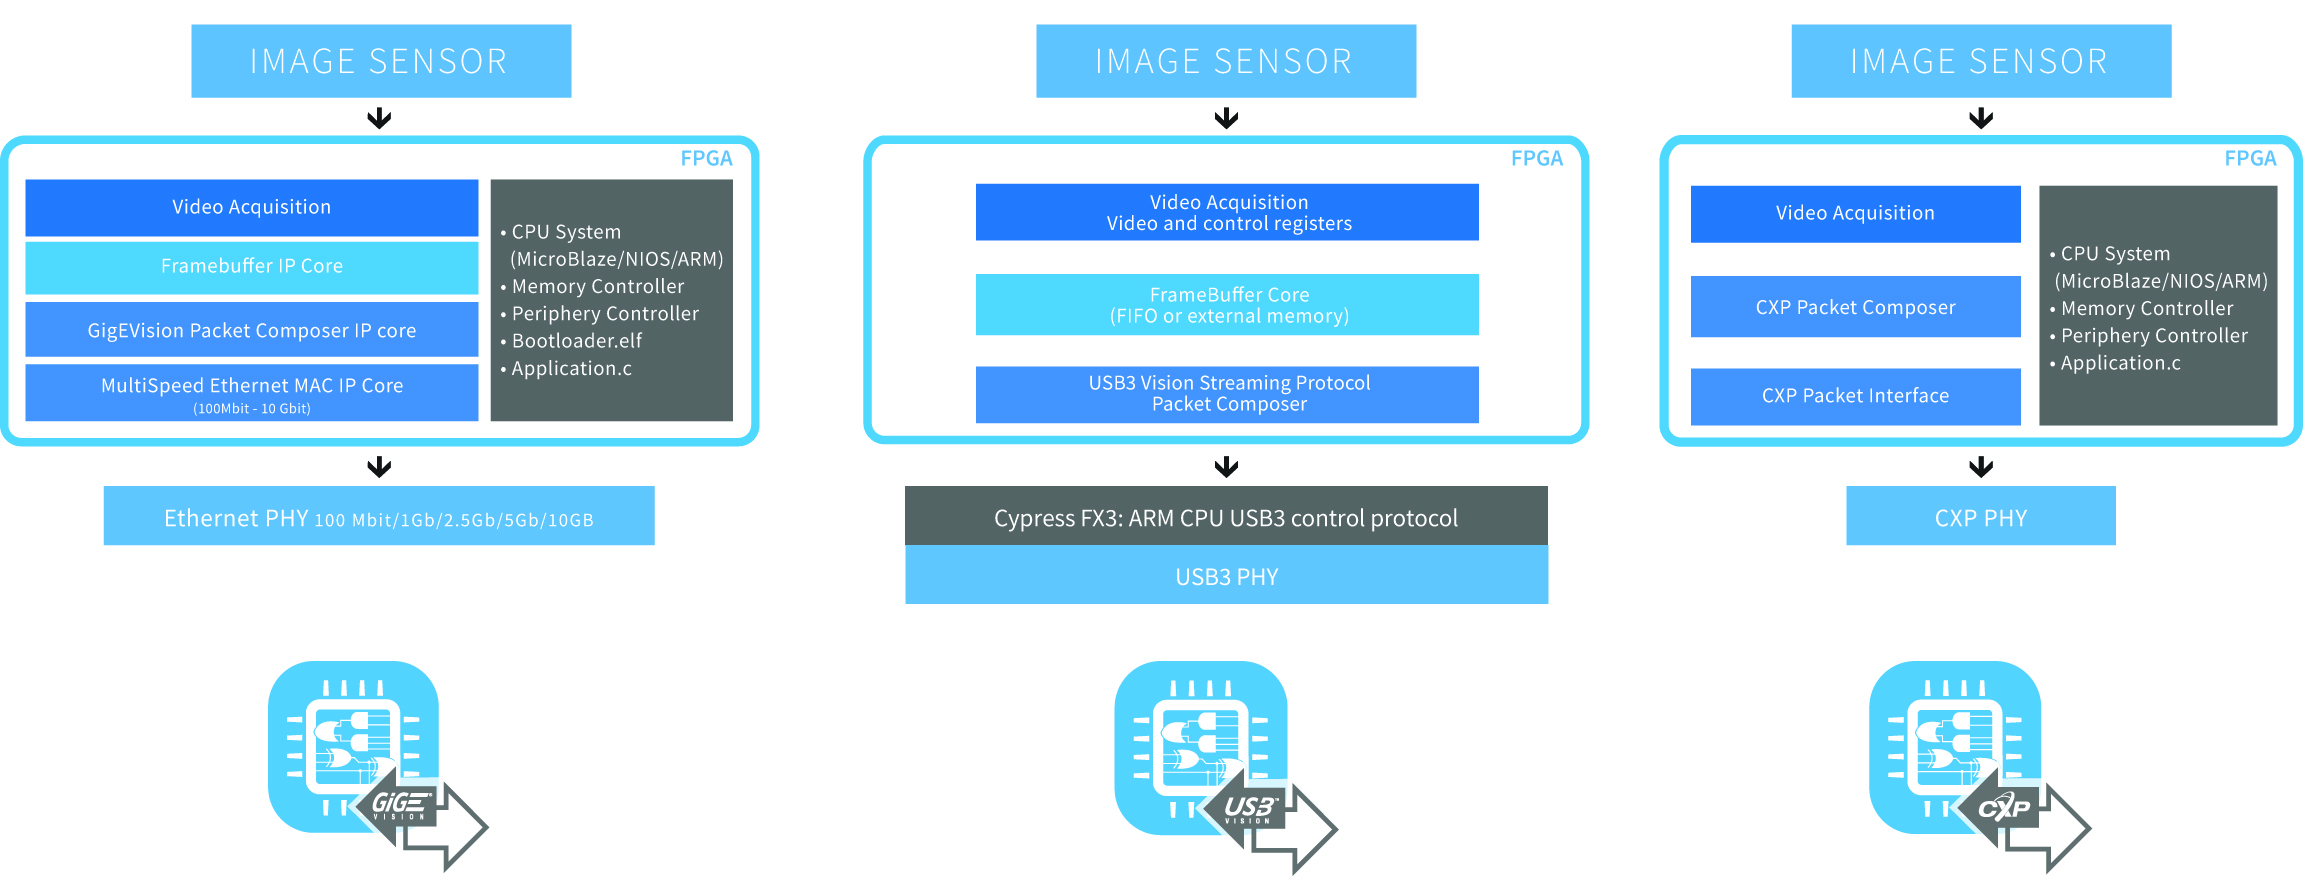 Image 1 | IP cores secure the interoperability of the camera and host while ensuring compliance with the latest version of the interface layer. Sensor to Image's Vision Standard IP Cores solutions are delivered as a working reference design along with FPGA IP cores. (Bild: Euresys s.a.)